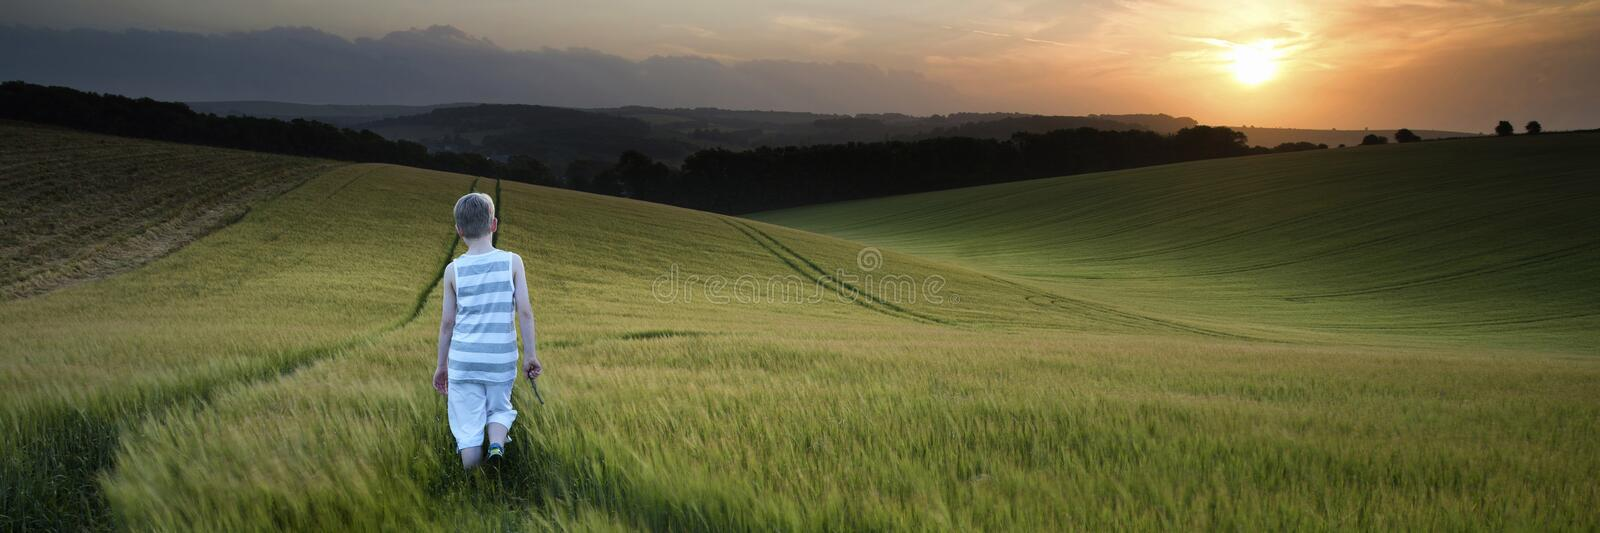 Concept panorama landscape young boy walking through field at sunset in Summer stock photography